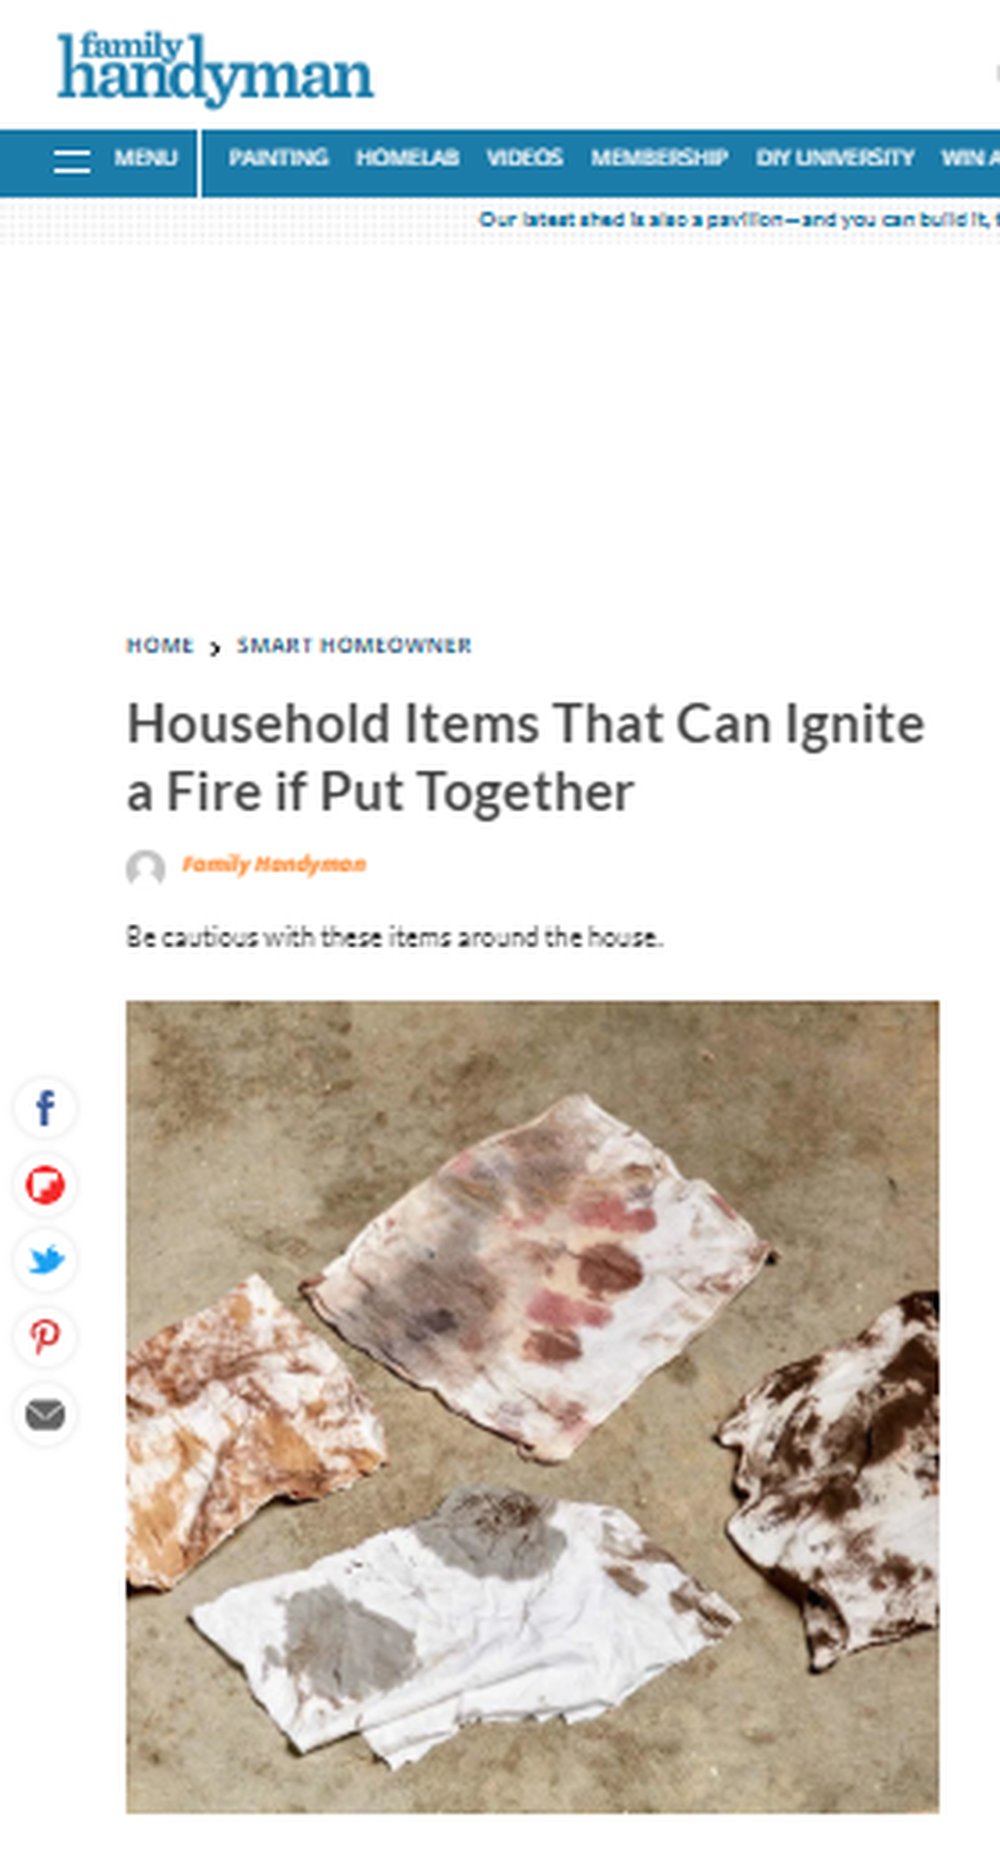 Household Items That Can Ignite a Fire if Put Together   Family Handyman (2).png